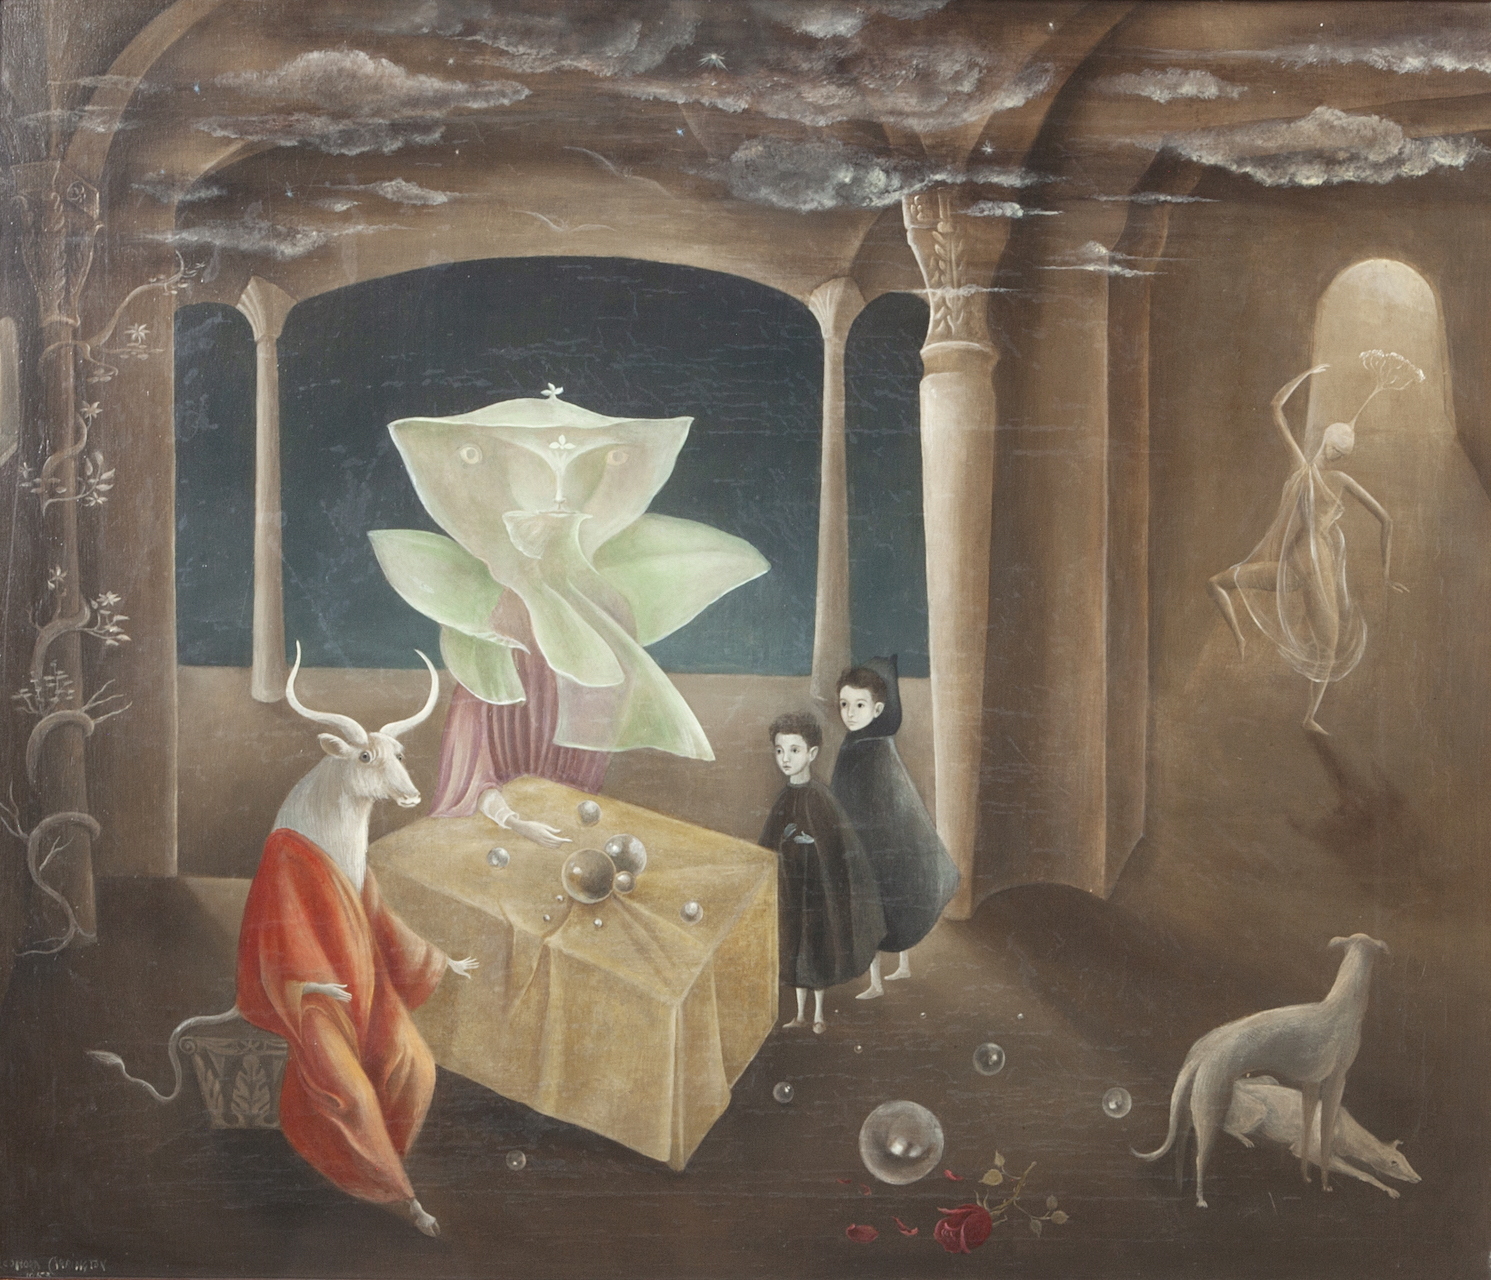 "LEONORA CARRINGTON, AND THEN WE SAW THE DAUGHTER OF THE MINOTAUR!, 1953, OIL ON CANVAS, 23 3/5″ X 27 1/2″. SIGNED L.L. ""LEONORA CARRINGTON 1953."" © 2019 ESTATE OF LEONORA CARRINGTON / ARTISTS RIGHTS SOCIETY (ARS), NEW YORK. COURTESY OF GALLERY WENDI NORRIS."